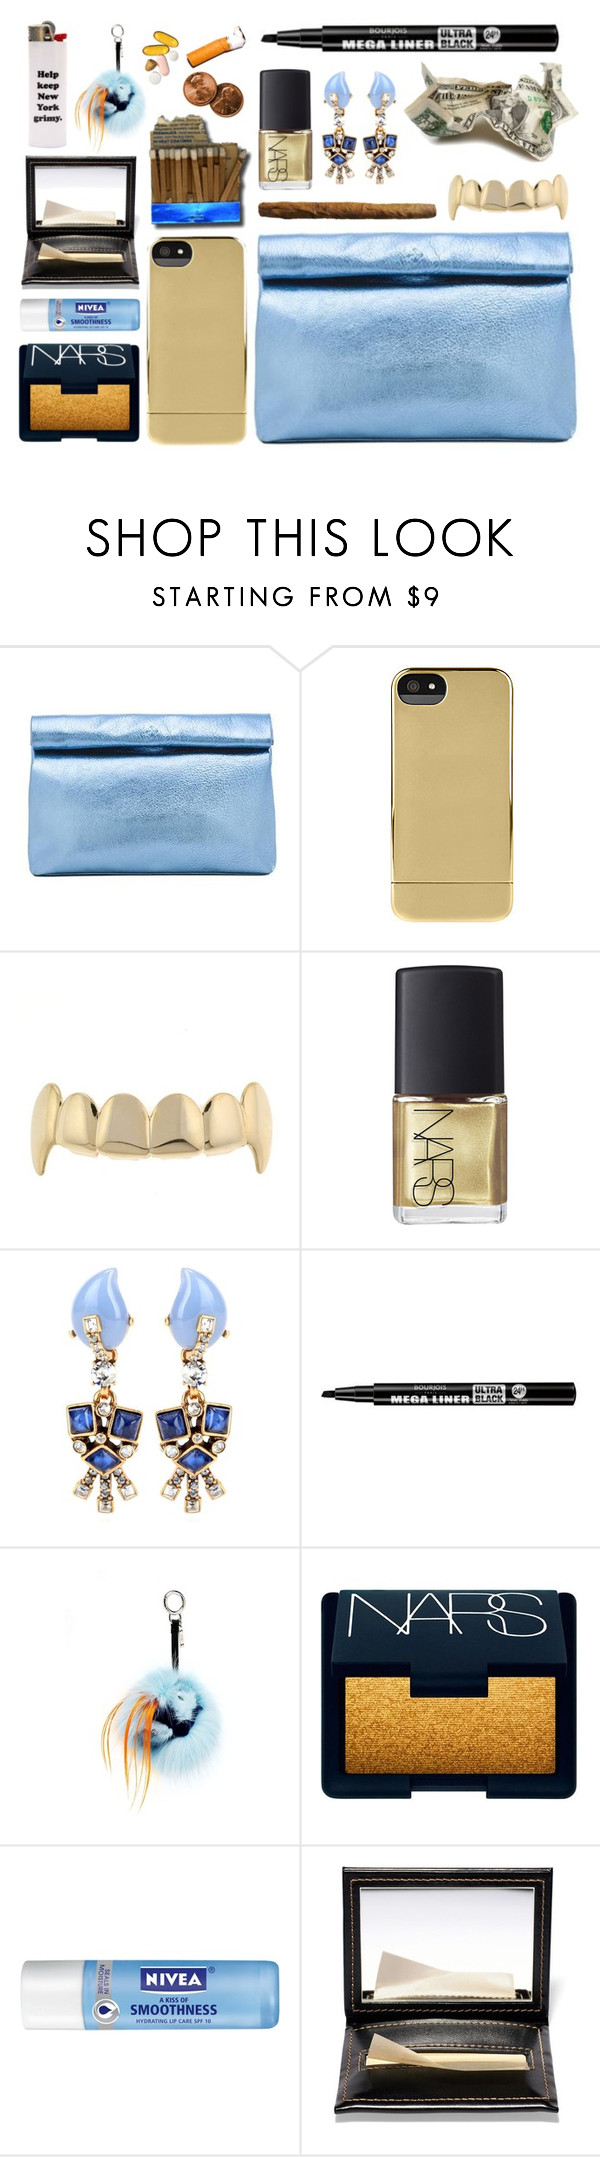 """""""what's in the bag   fall 2015."""" by goldiloxx ❤ liked on Polyvore featuring Marie Turnor, Incase, NARS Cosmetics, Oscar de la Renta, Bourjois, Fendi, Nivea, Bobbi Brown Cosmetics, Clutch and metallic"""